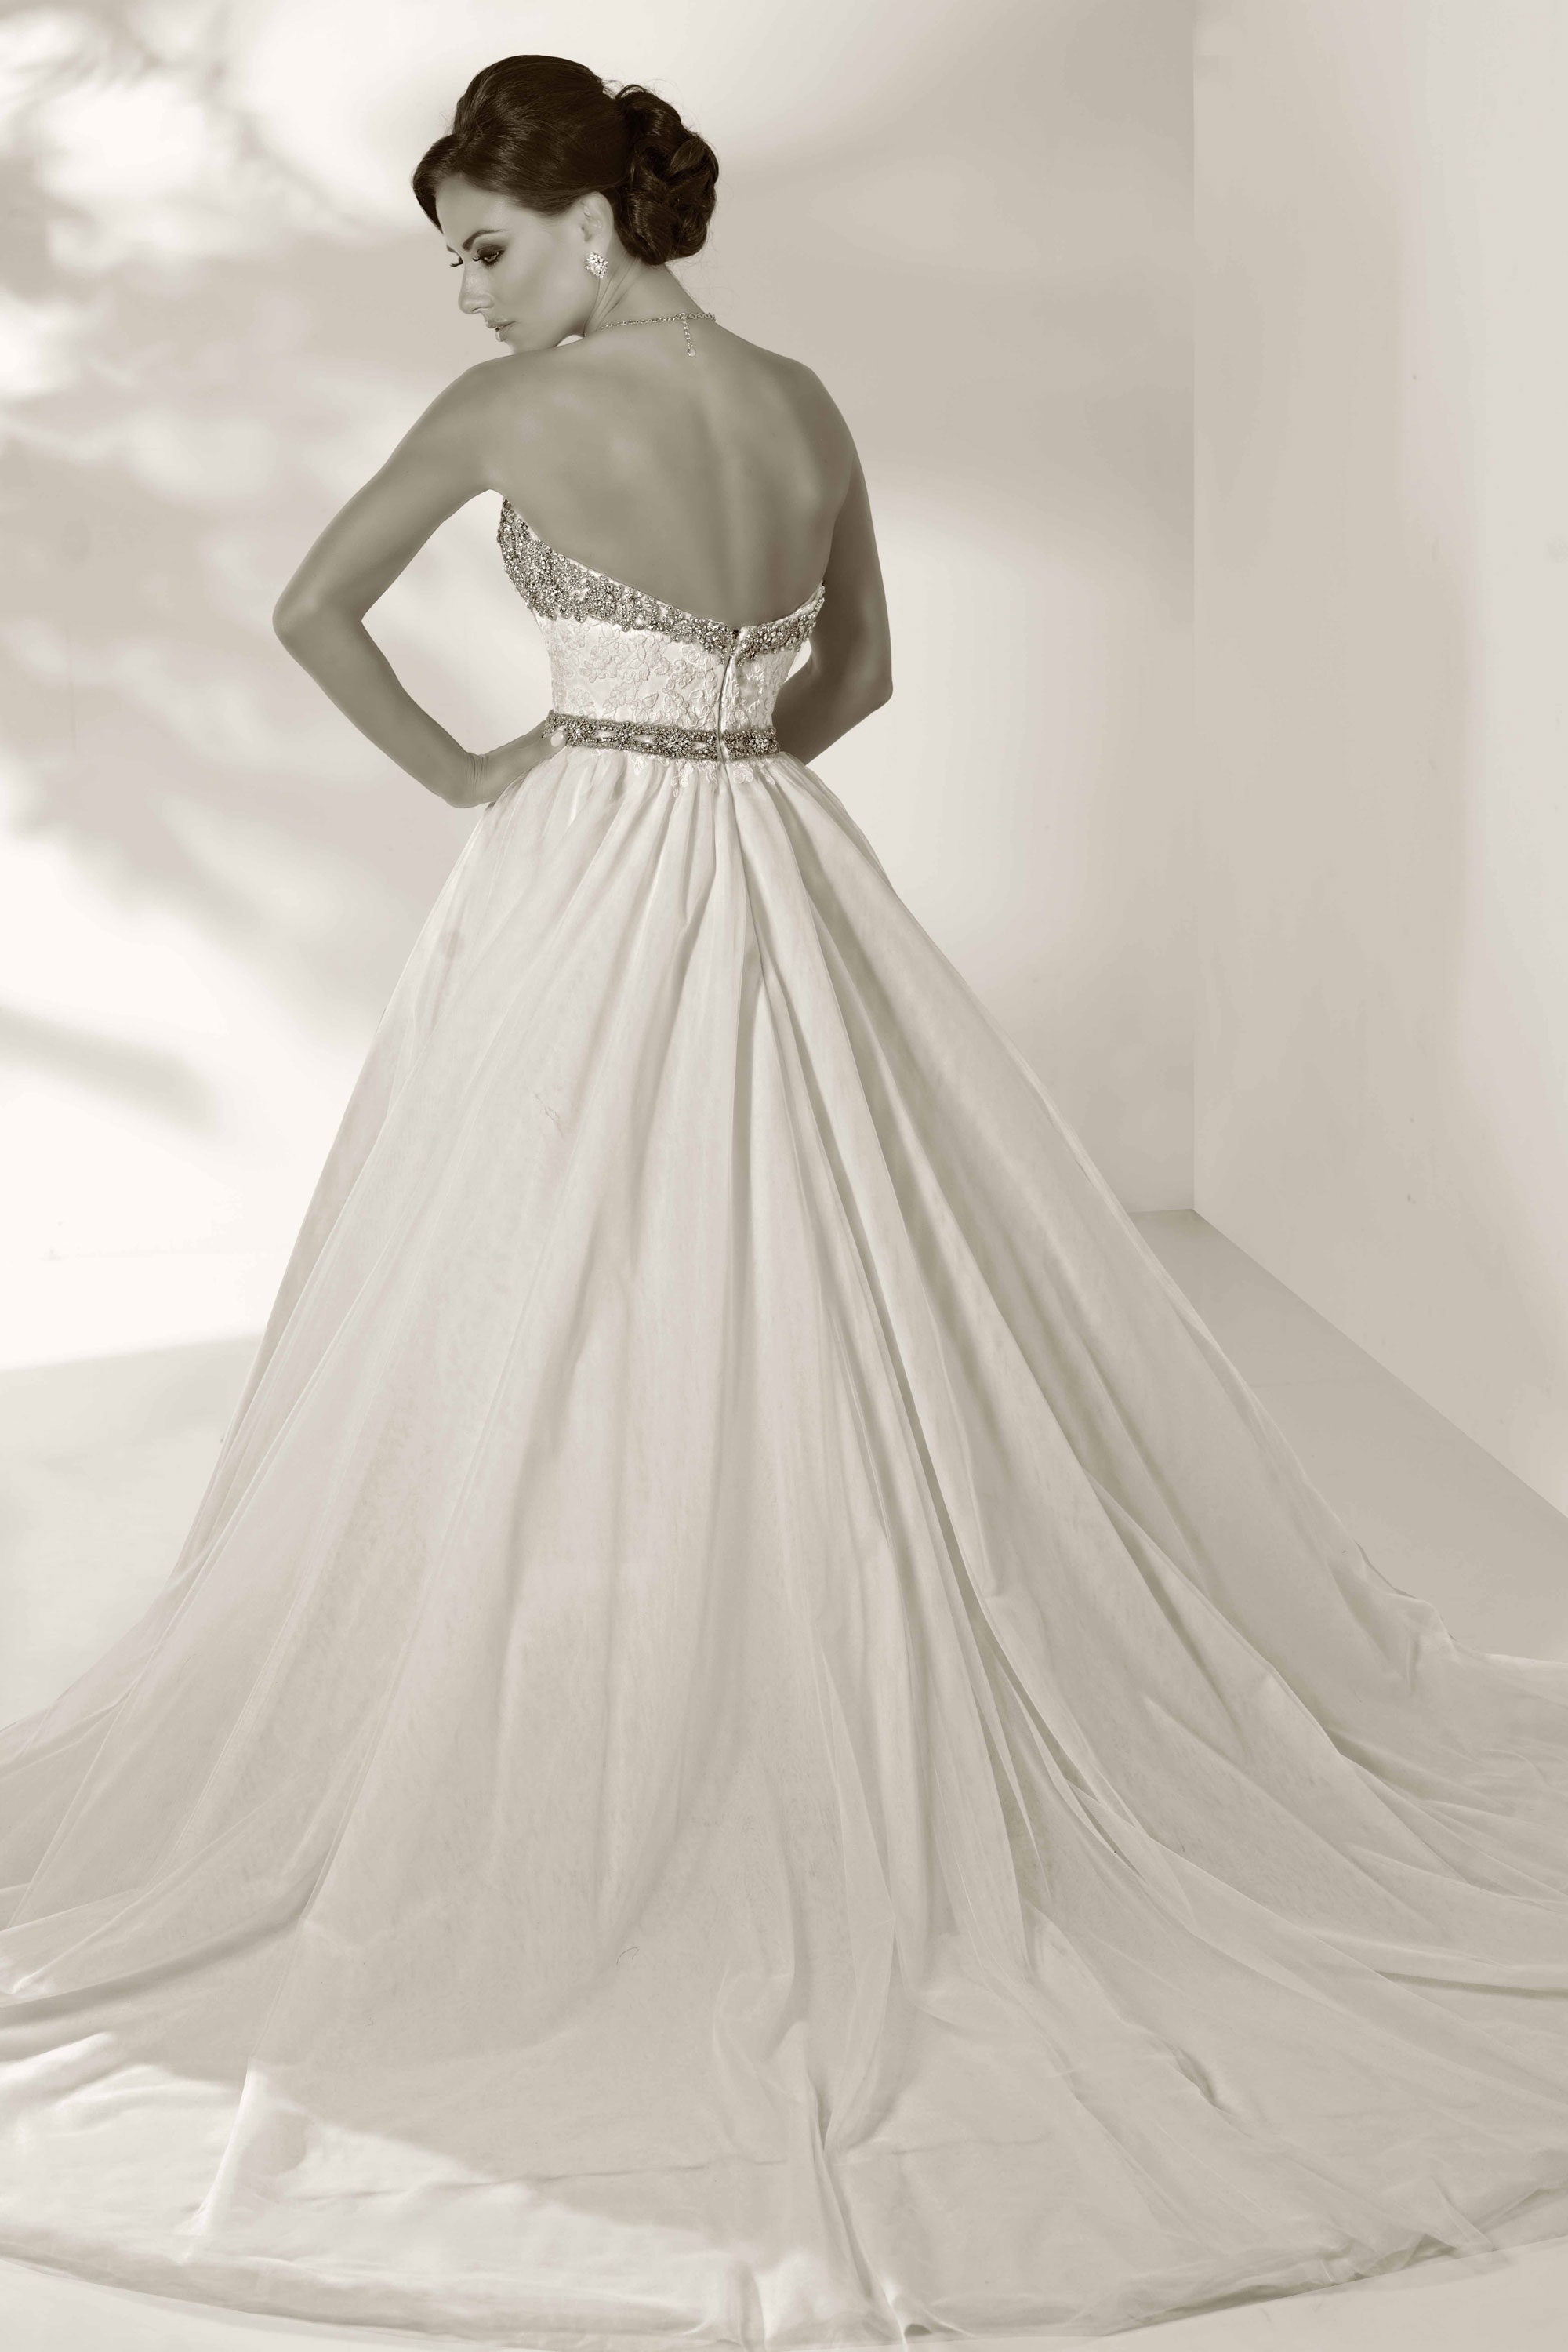 cristiano-lucci-wedding-dresses-2-01052014